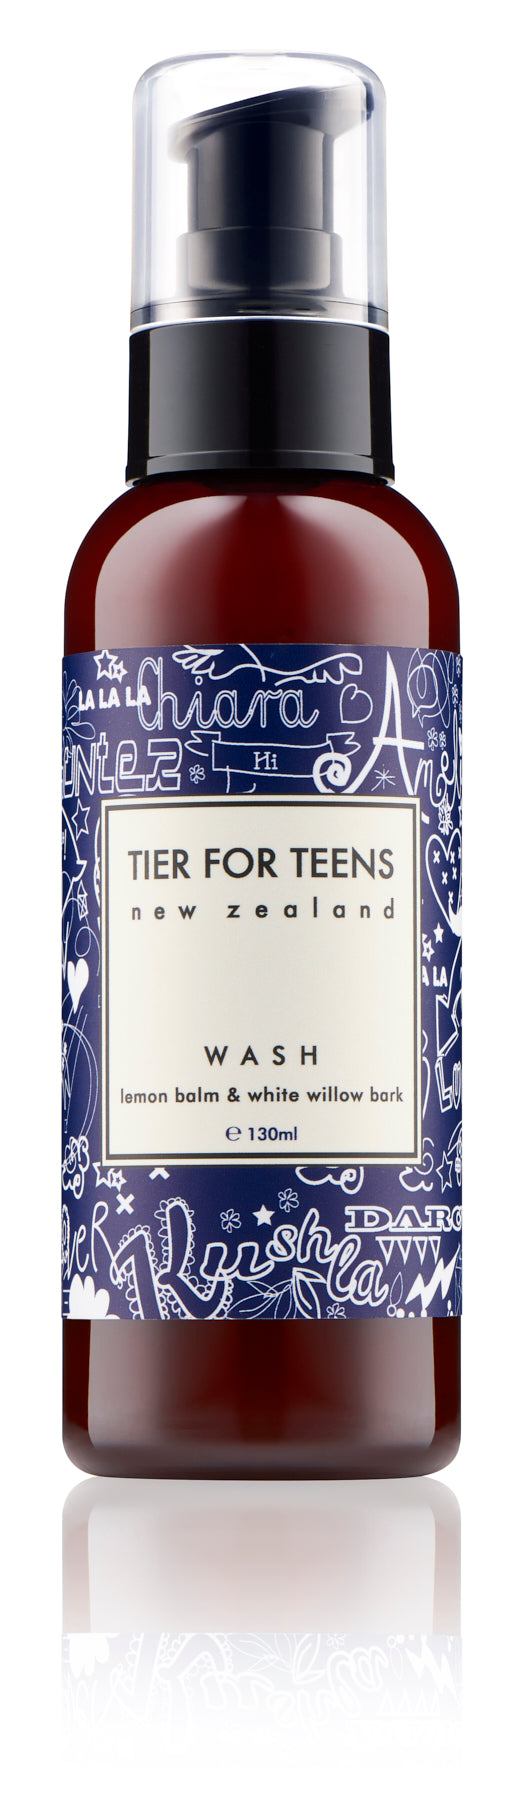 Tier For Teens Wash 130ml